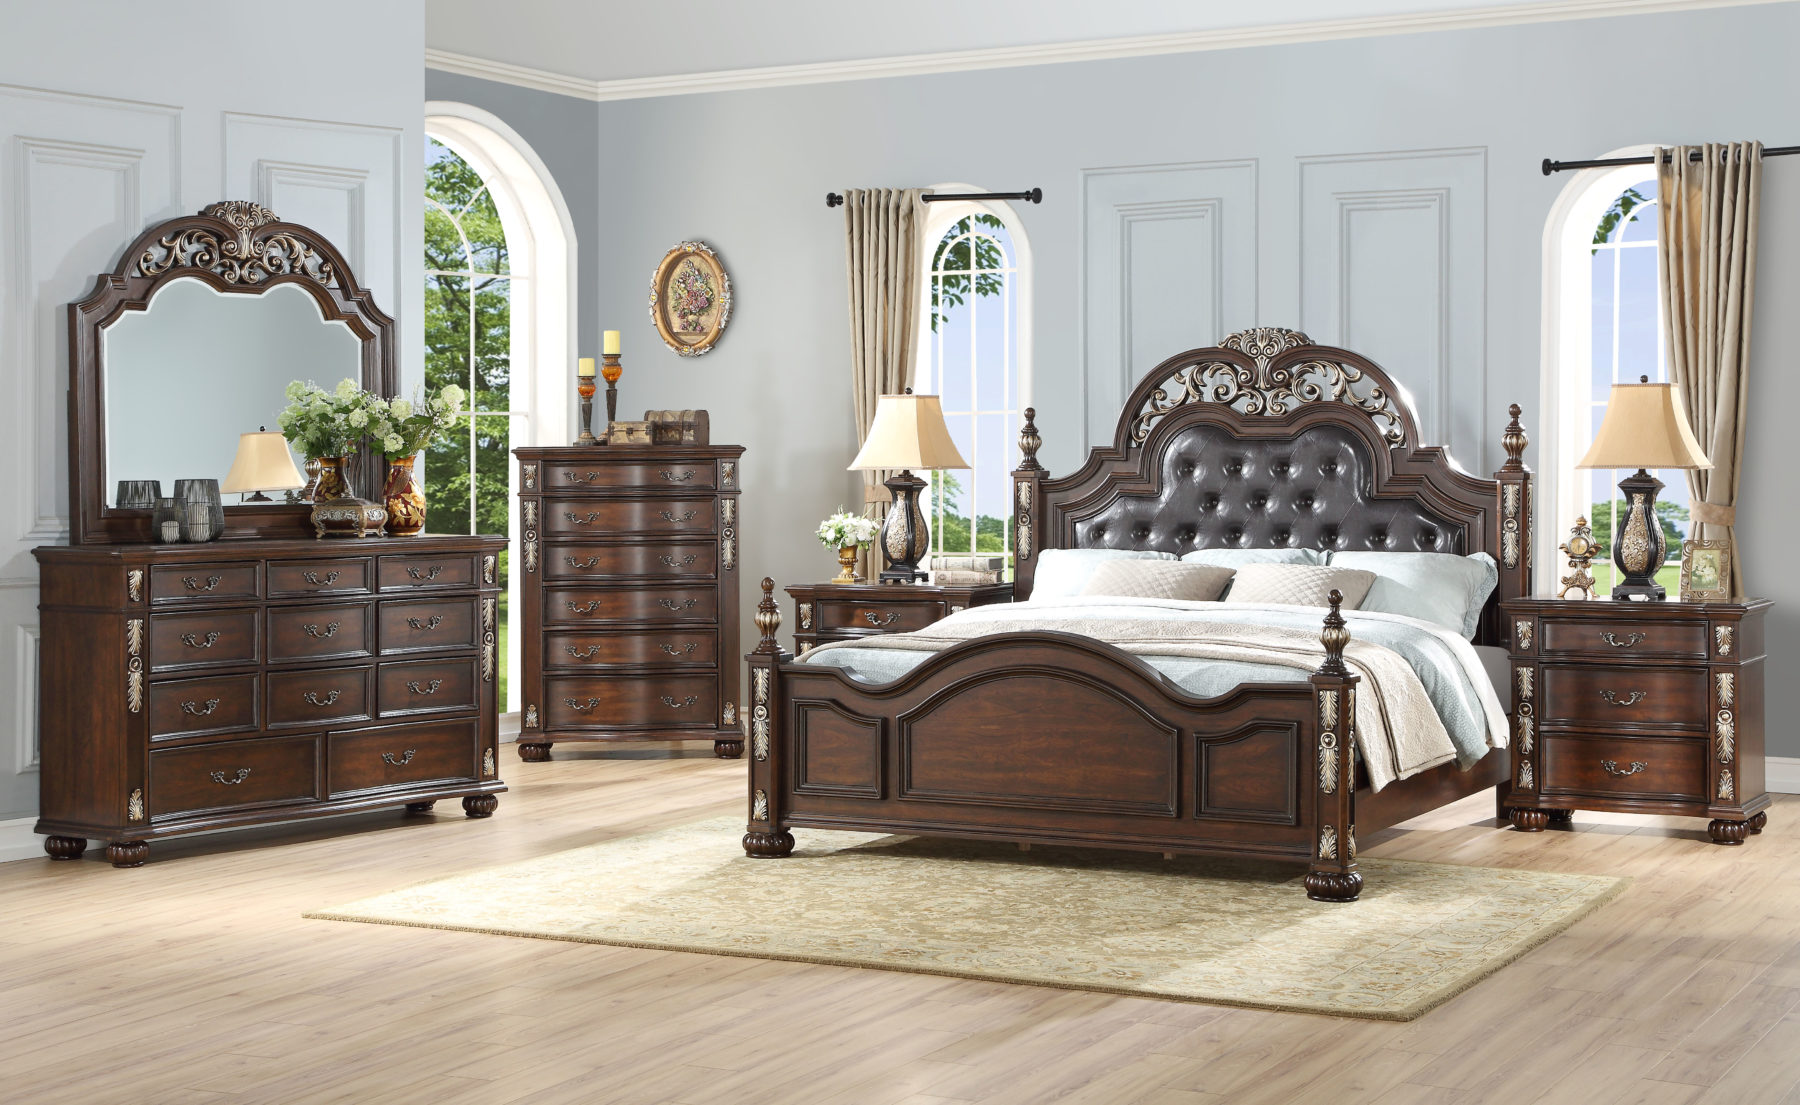 Maximus 6 Piece Bedroom Set | Gonzalez Furniture